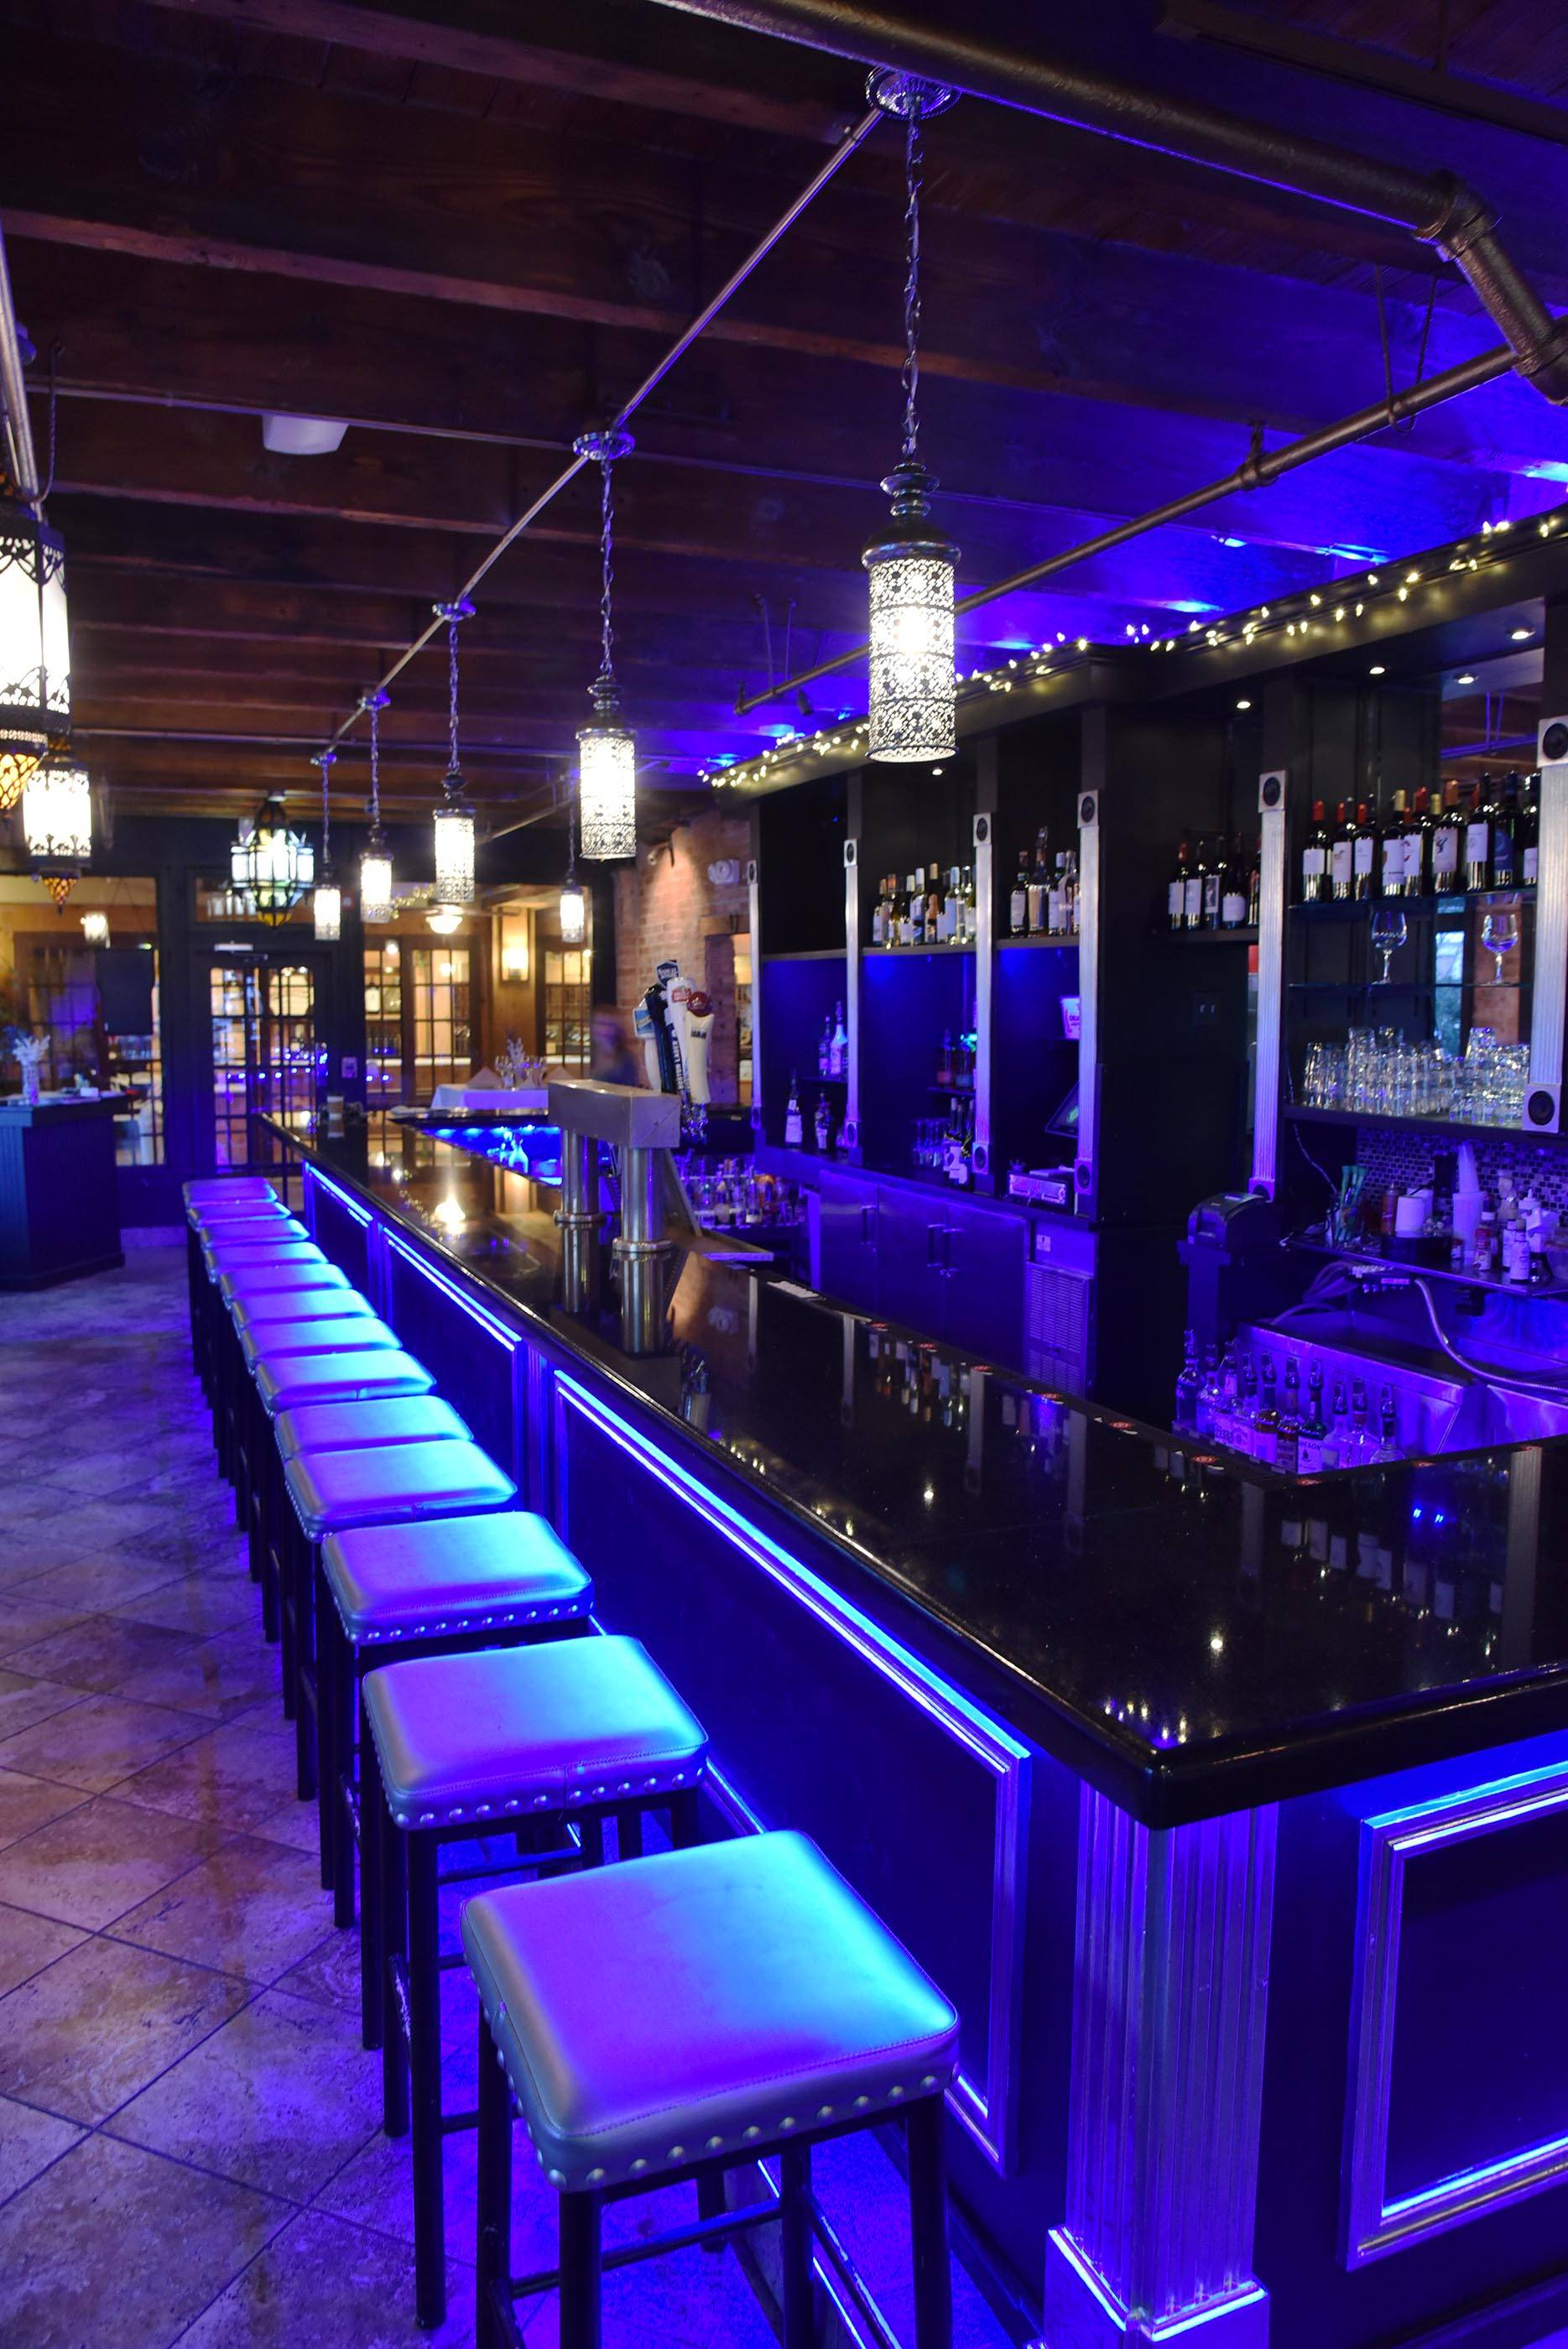 Blue accent lighting and gray leather bar stools exude a cool vibe at Eden on the River in St. Charles.